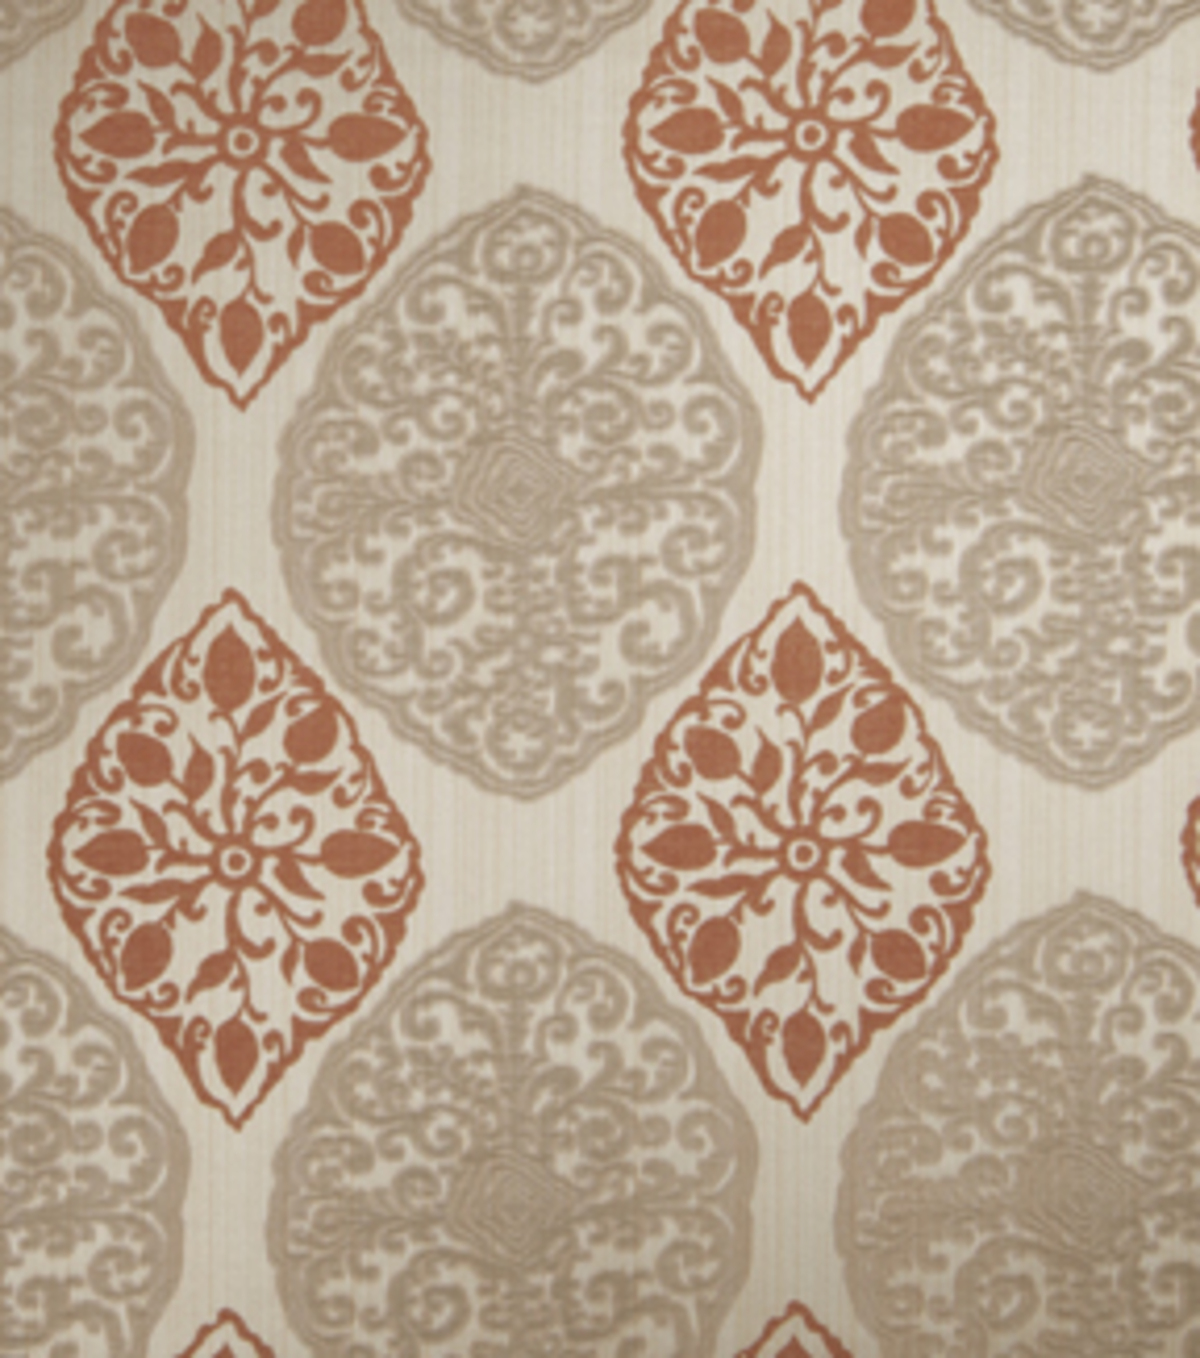 Home Decor 8\u0022x8\u0022 Fabric Swatch-Eaton Square Mckenzie Amber